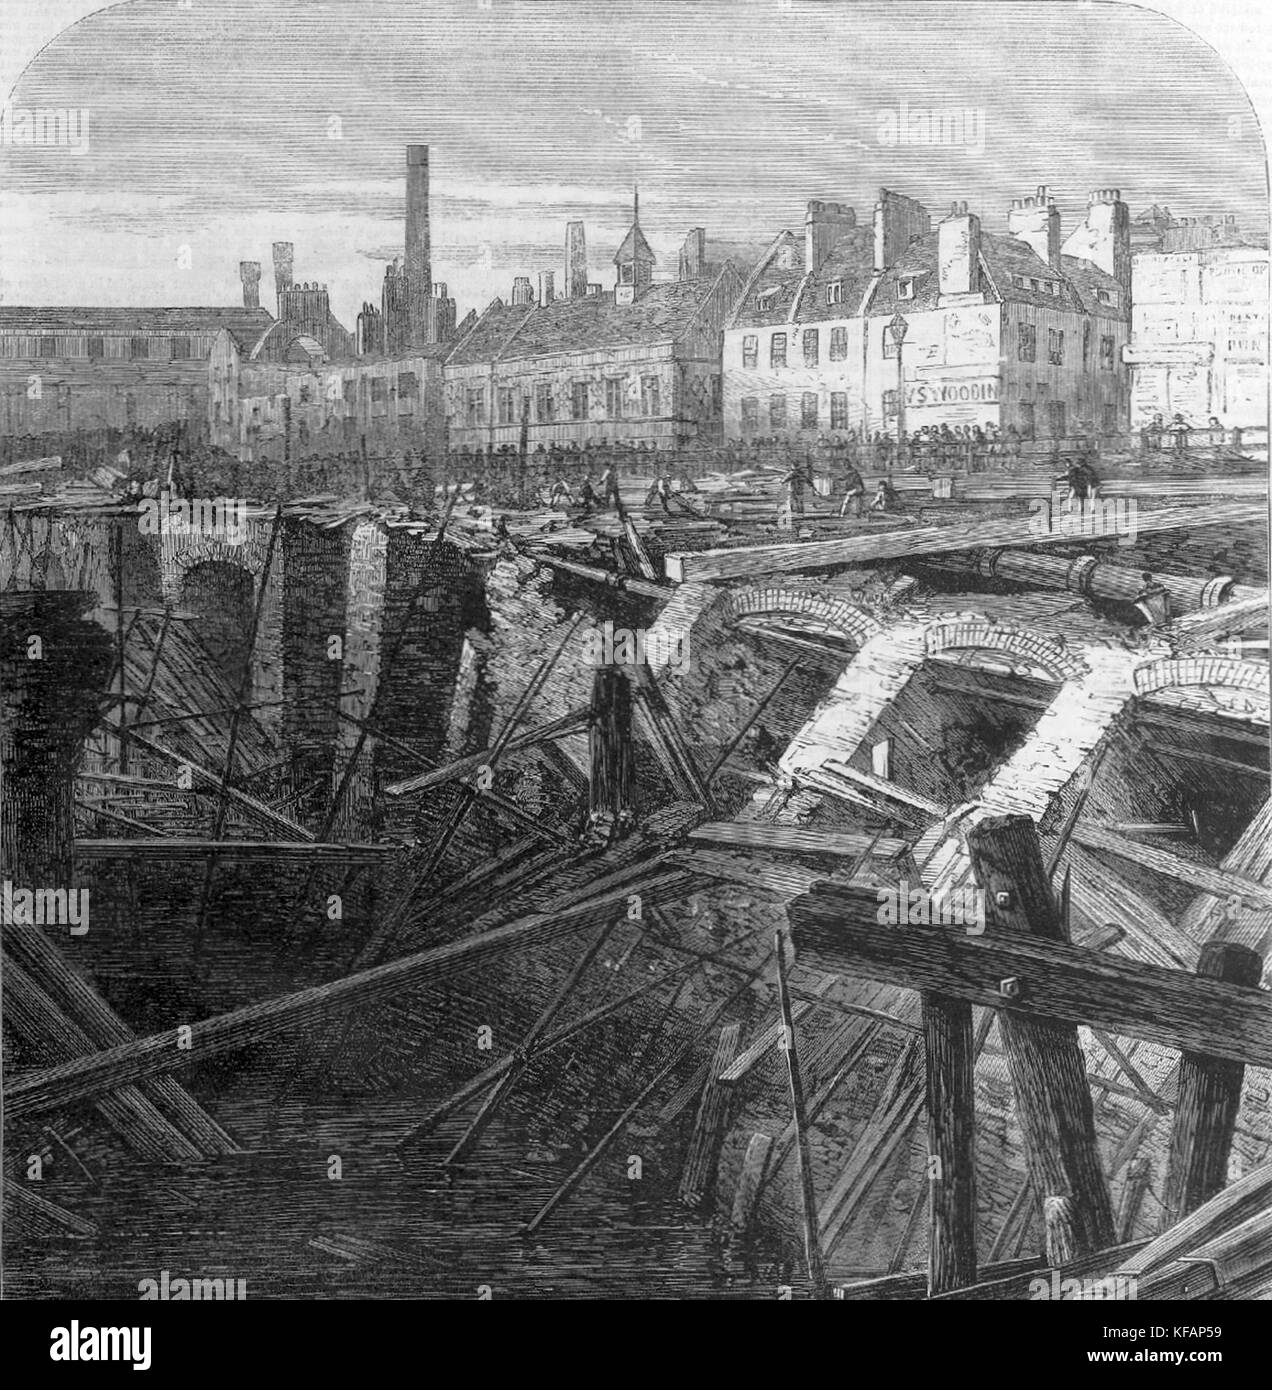 Damage caused by the collapse of the Fleet ditch into the cutting of the Metropolitan Railway near Farringdon station - Stock Image